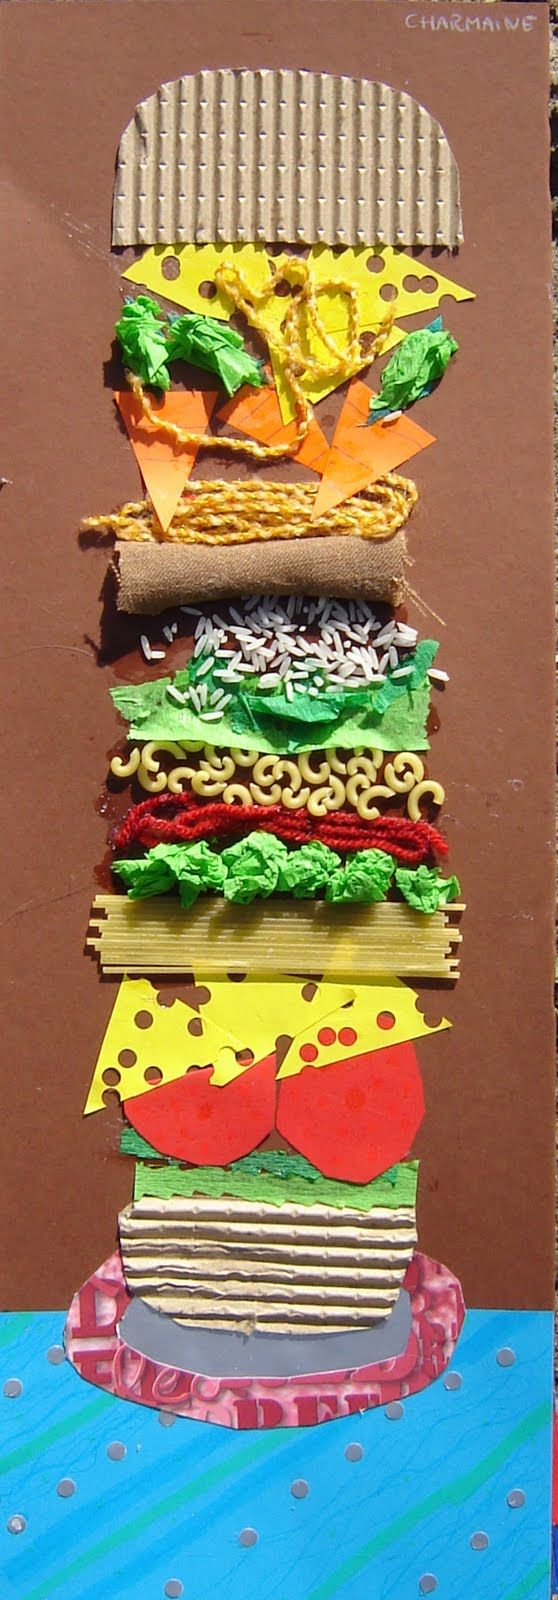 Silly sandwich- (Note: great art project when teaching about texture)